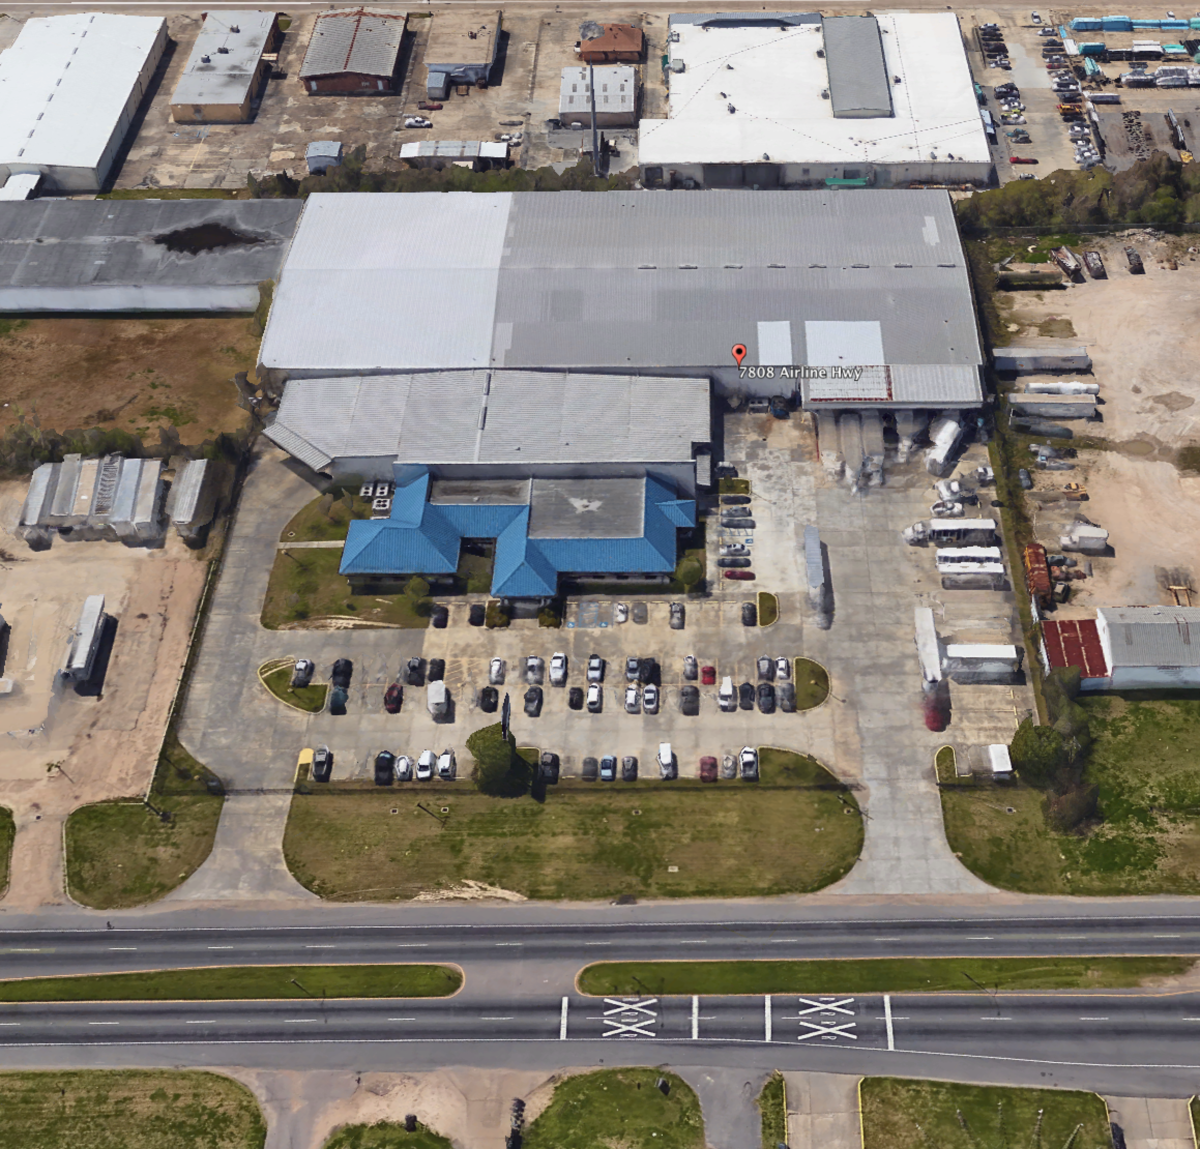 7808 Airline Hwy Baton Rouge La Industrial For Lease Lacdb Powered By Catylist